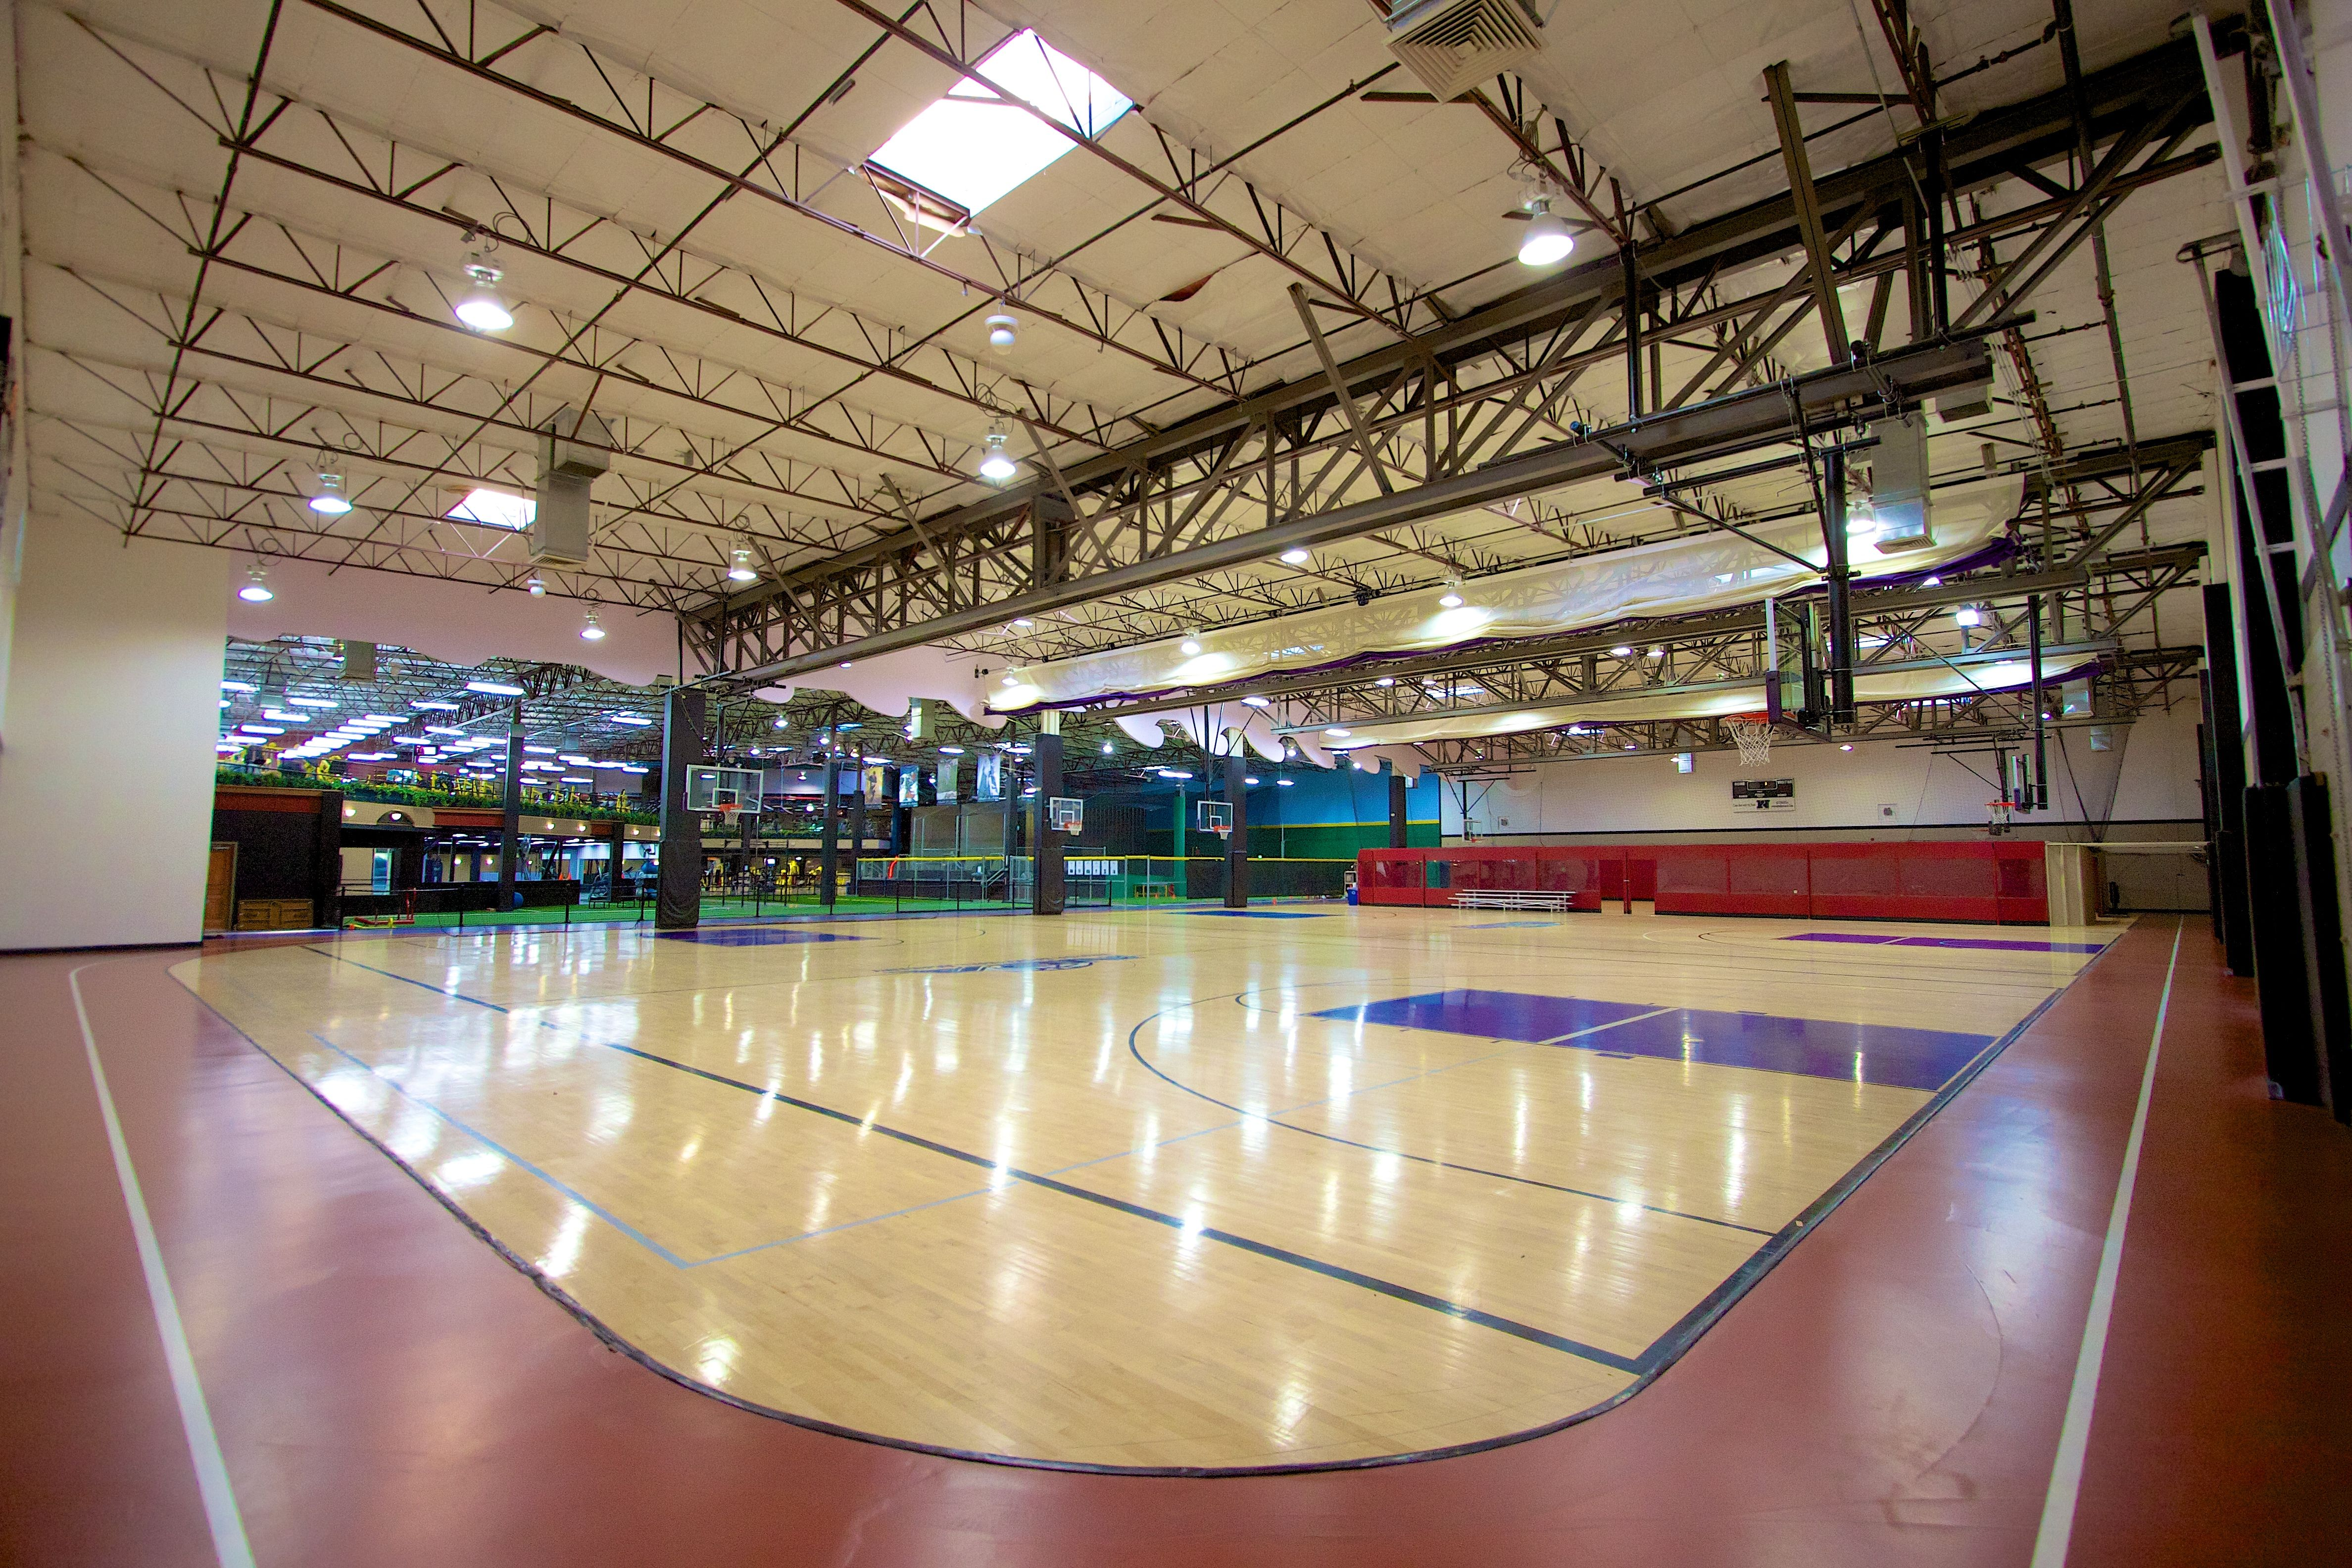 Indoor Running Track And Basketball Courts Basketball Indoor Basketball Court Basketball Shooting Drills